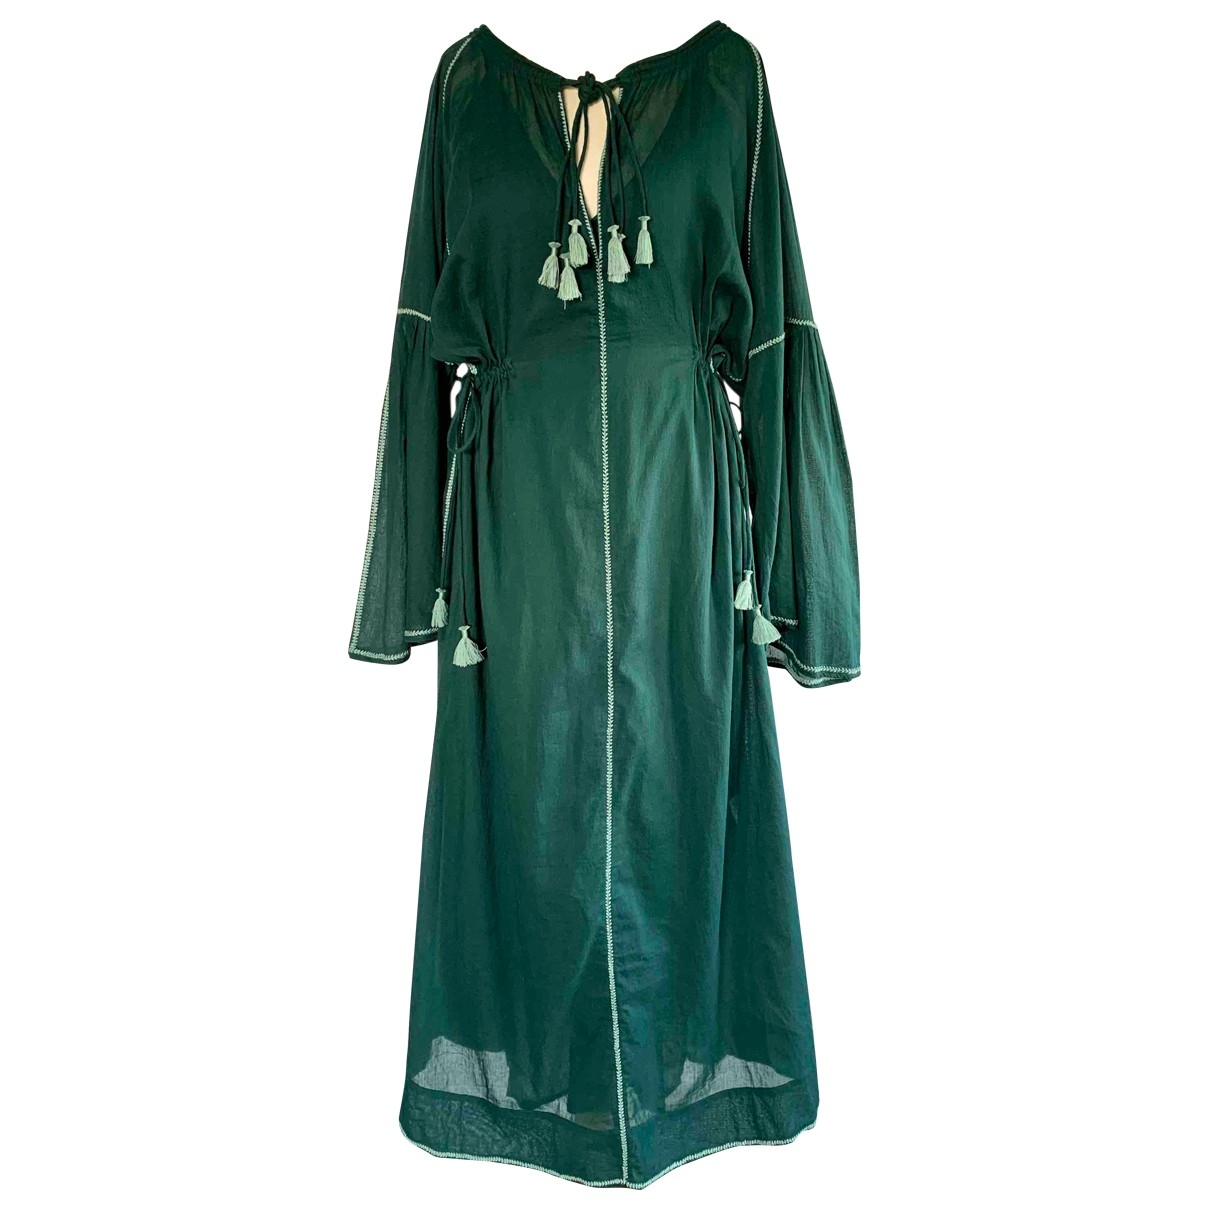 Mare Di Latte \N Green Cotton dress for Women 2 0-5